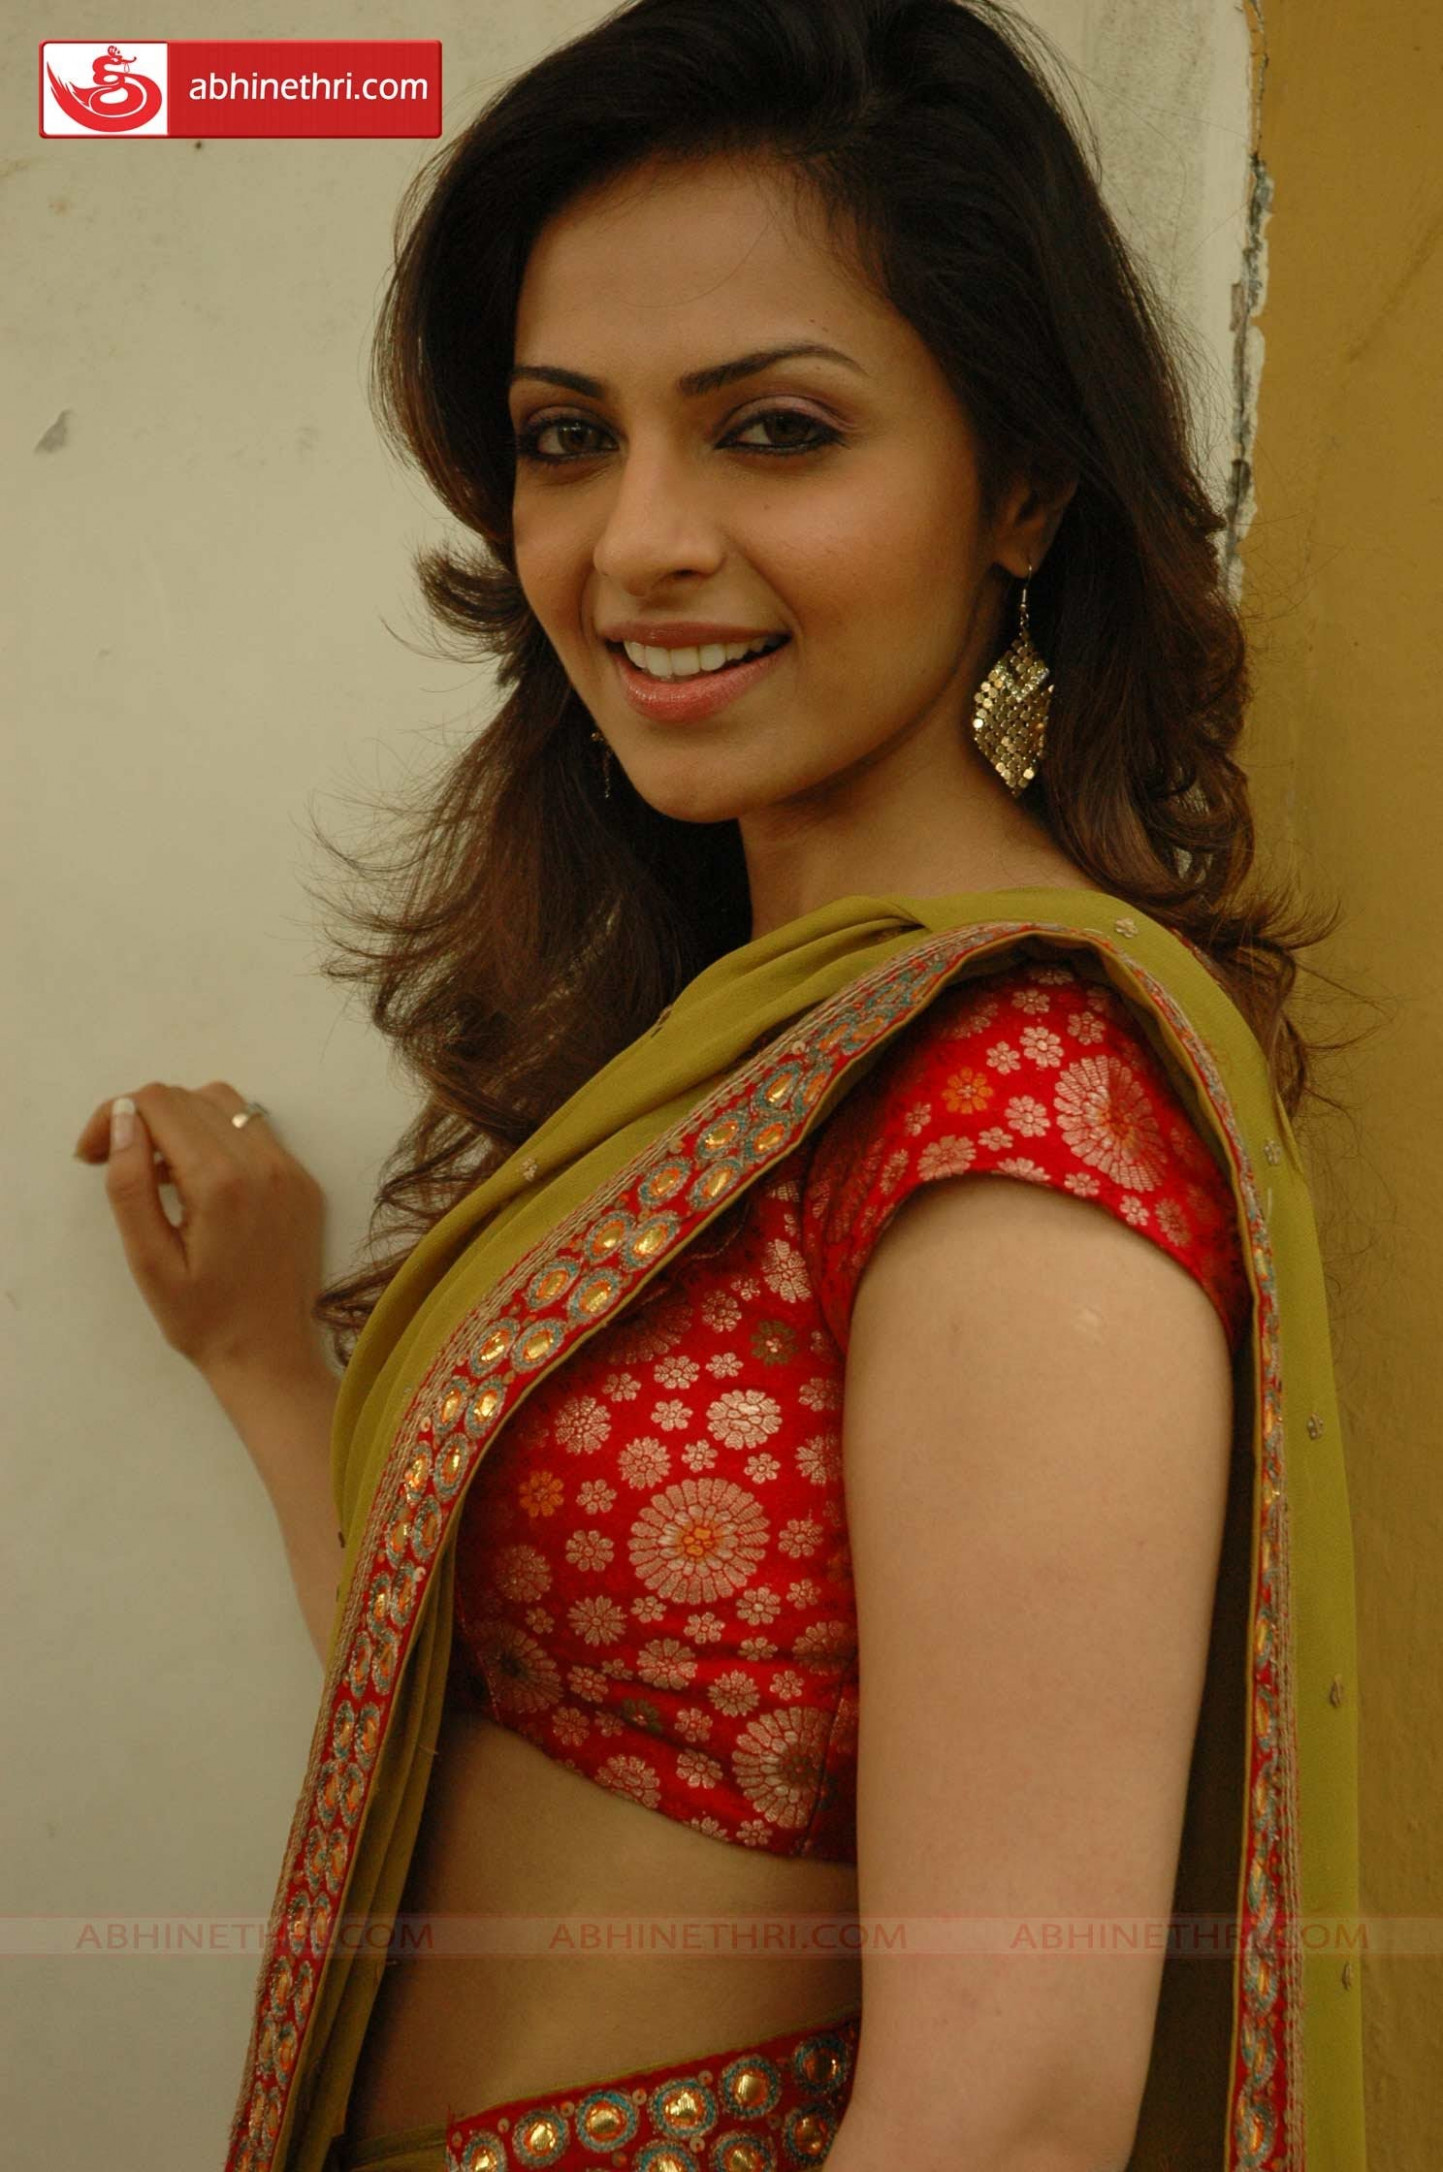 Cute Navel N Low Waist Saree - Page 36 - Xossip